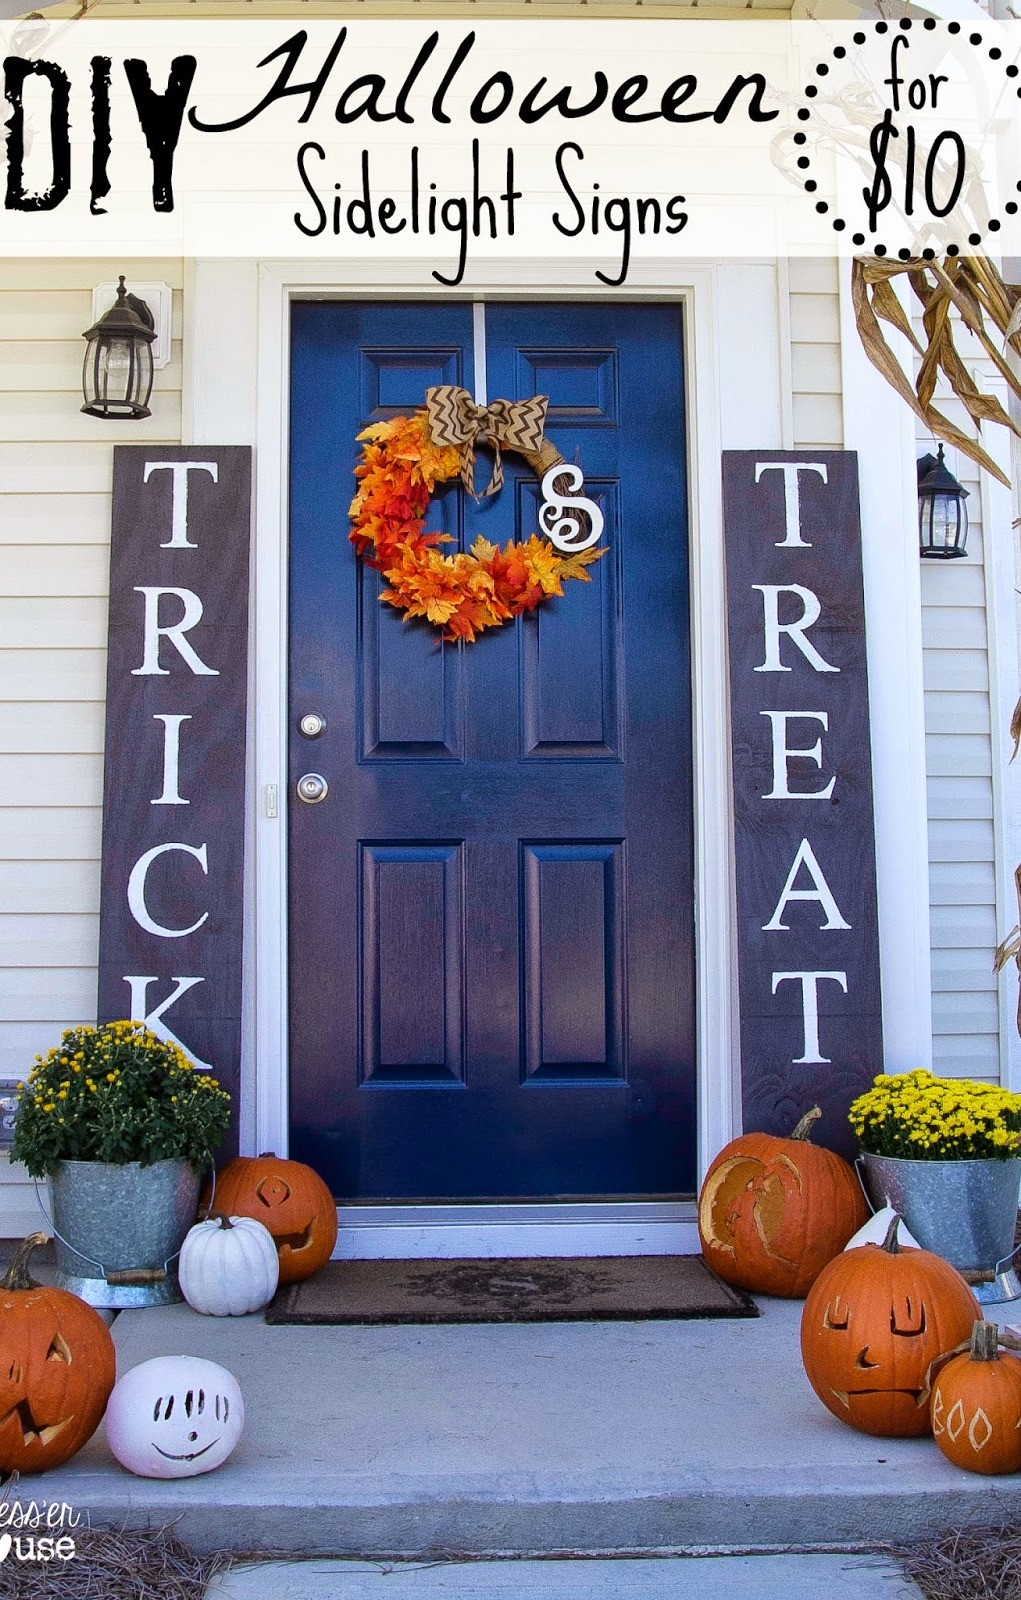 30 best halloween porch decorations ideas. Black Bedroom Furniture Sets. Home Design Ideas